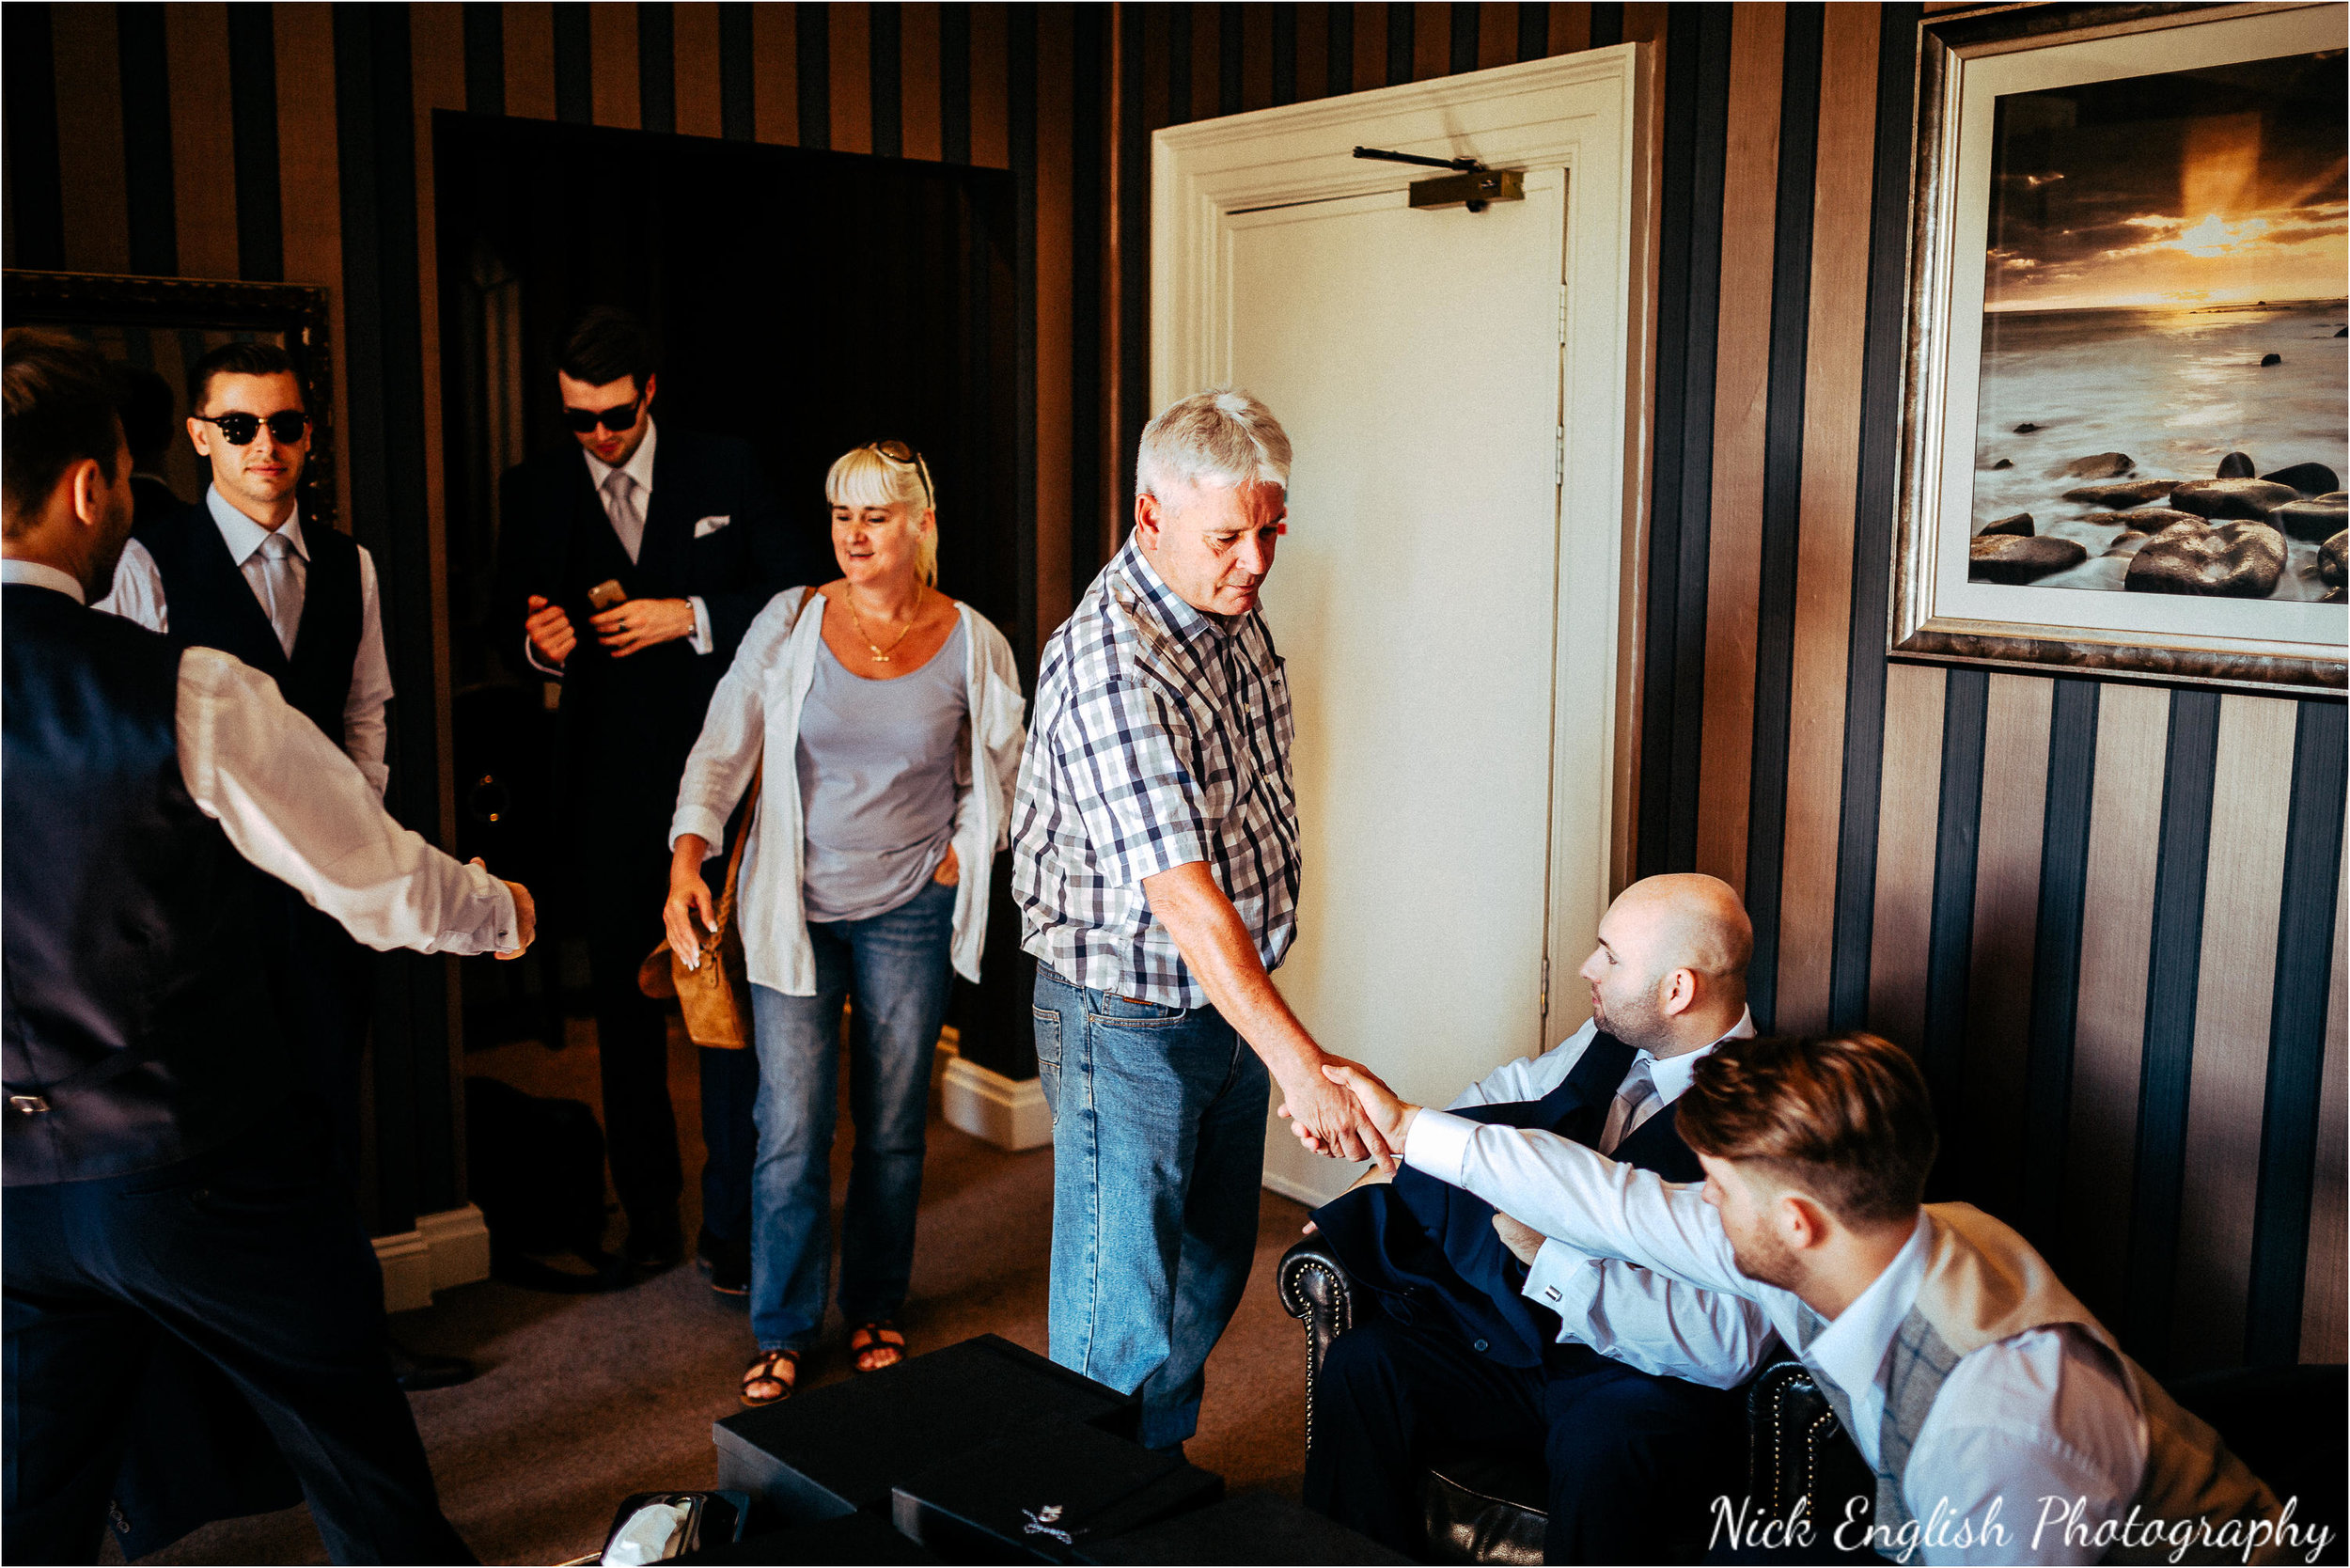 Eaves_Hall_Wedding_Photographs_Nick_English_Photography-45.jpg